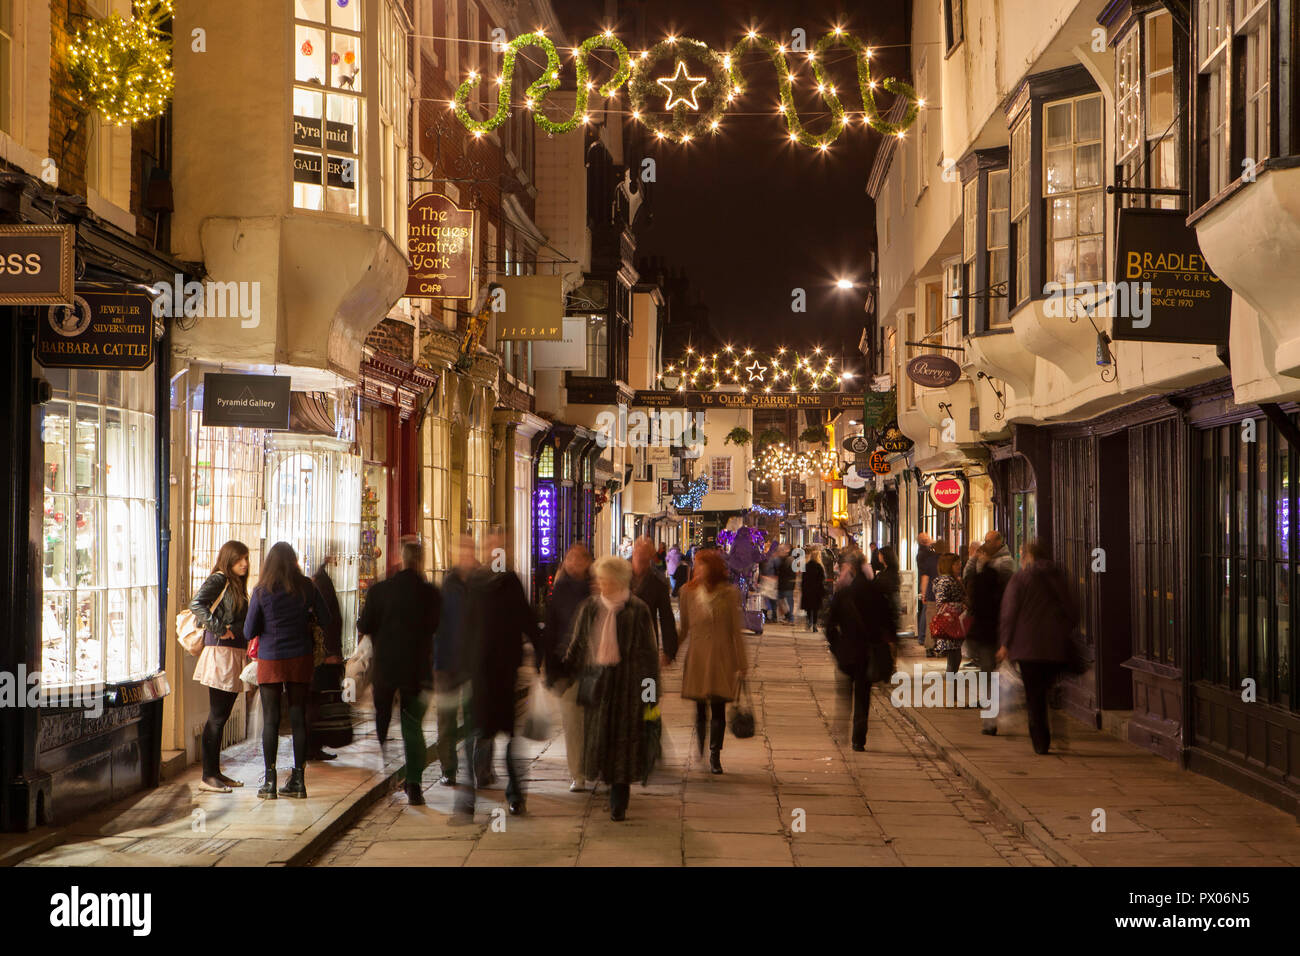 Night time photo of Stonegate in York with Christmas shoppers - Stock Image